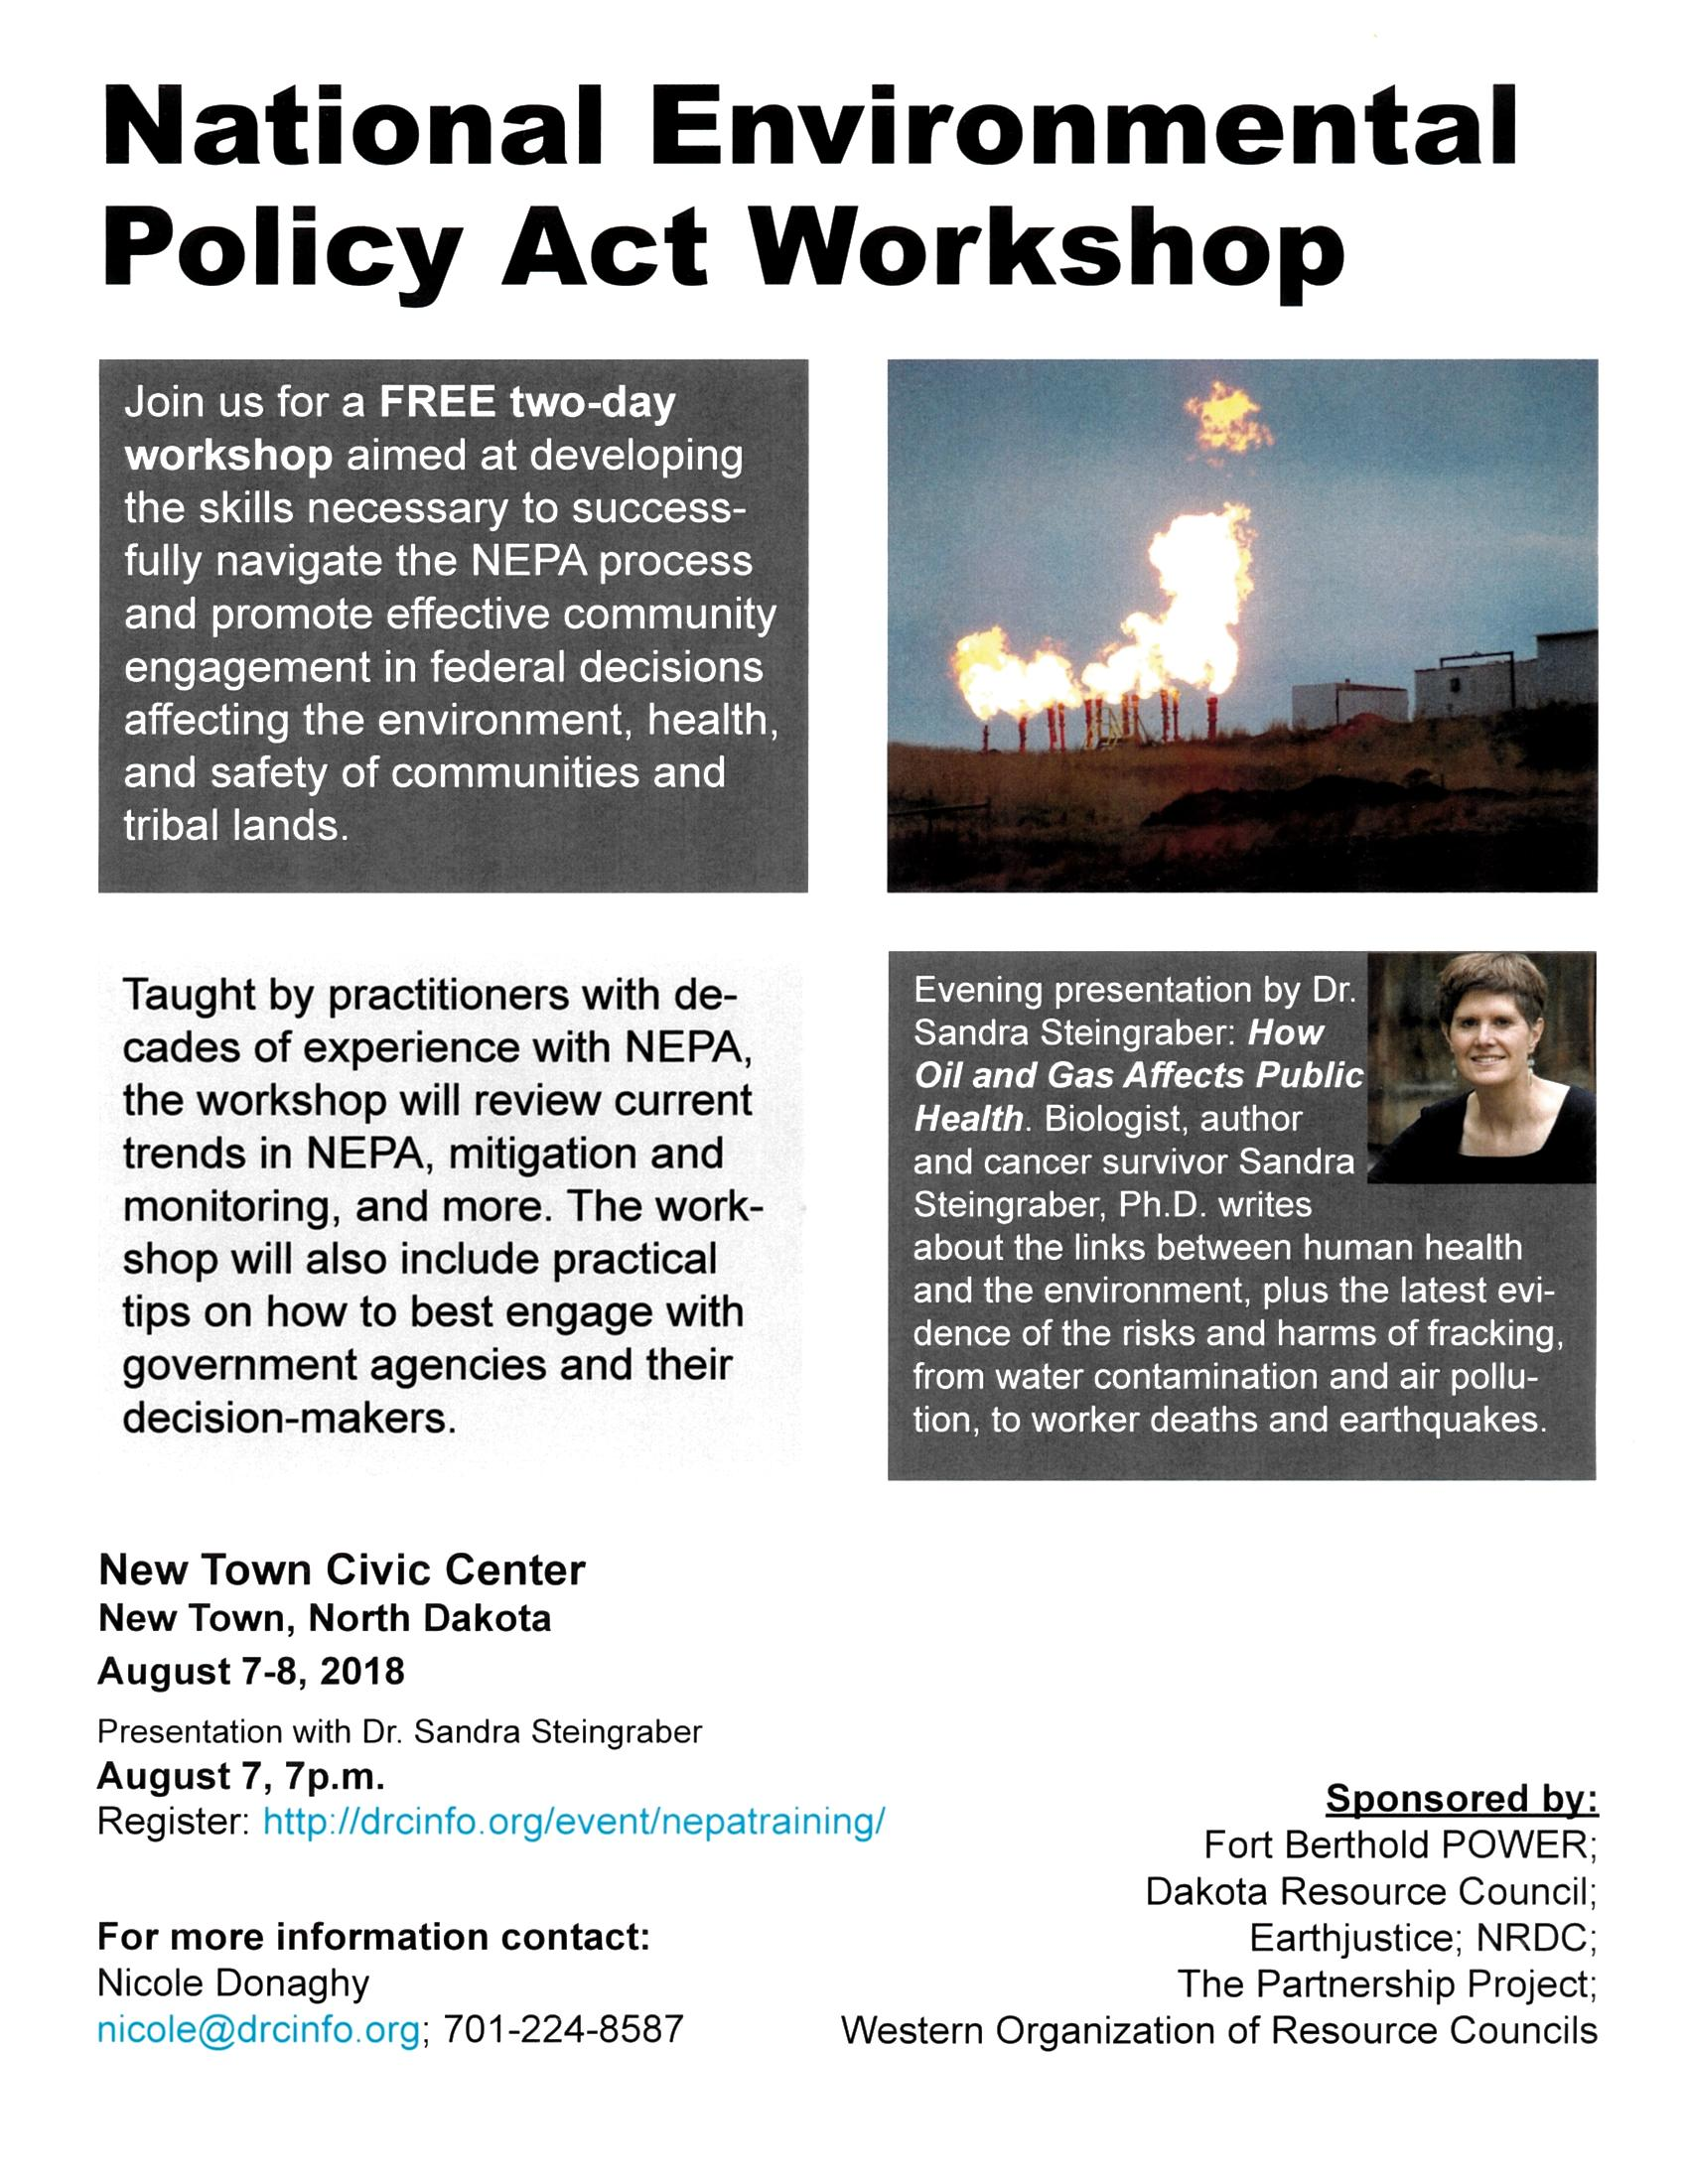 National Environmental Policy Act Workshop Aug 7-8 2018.jpg